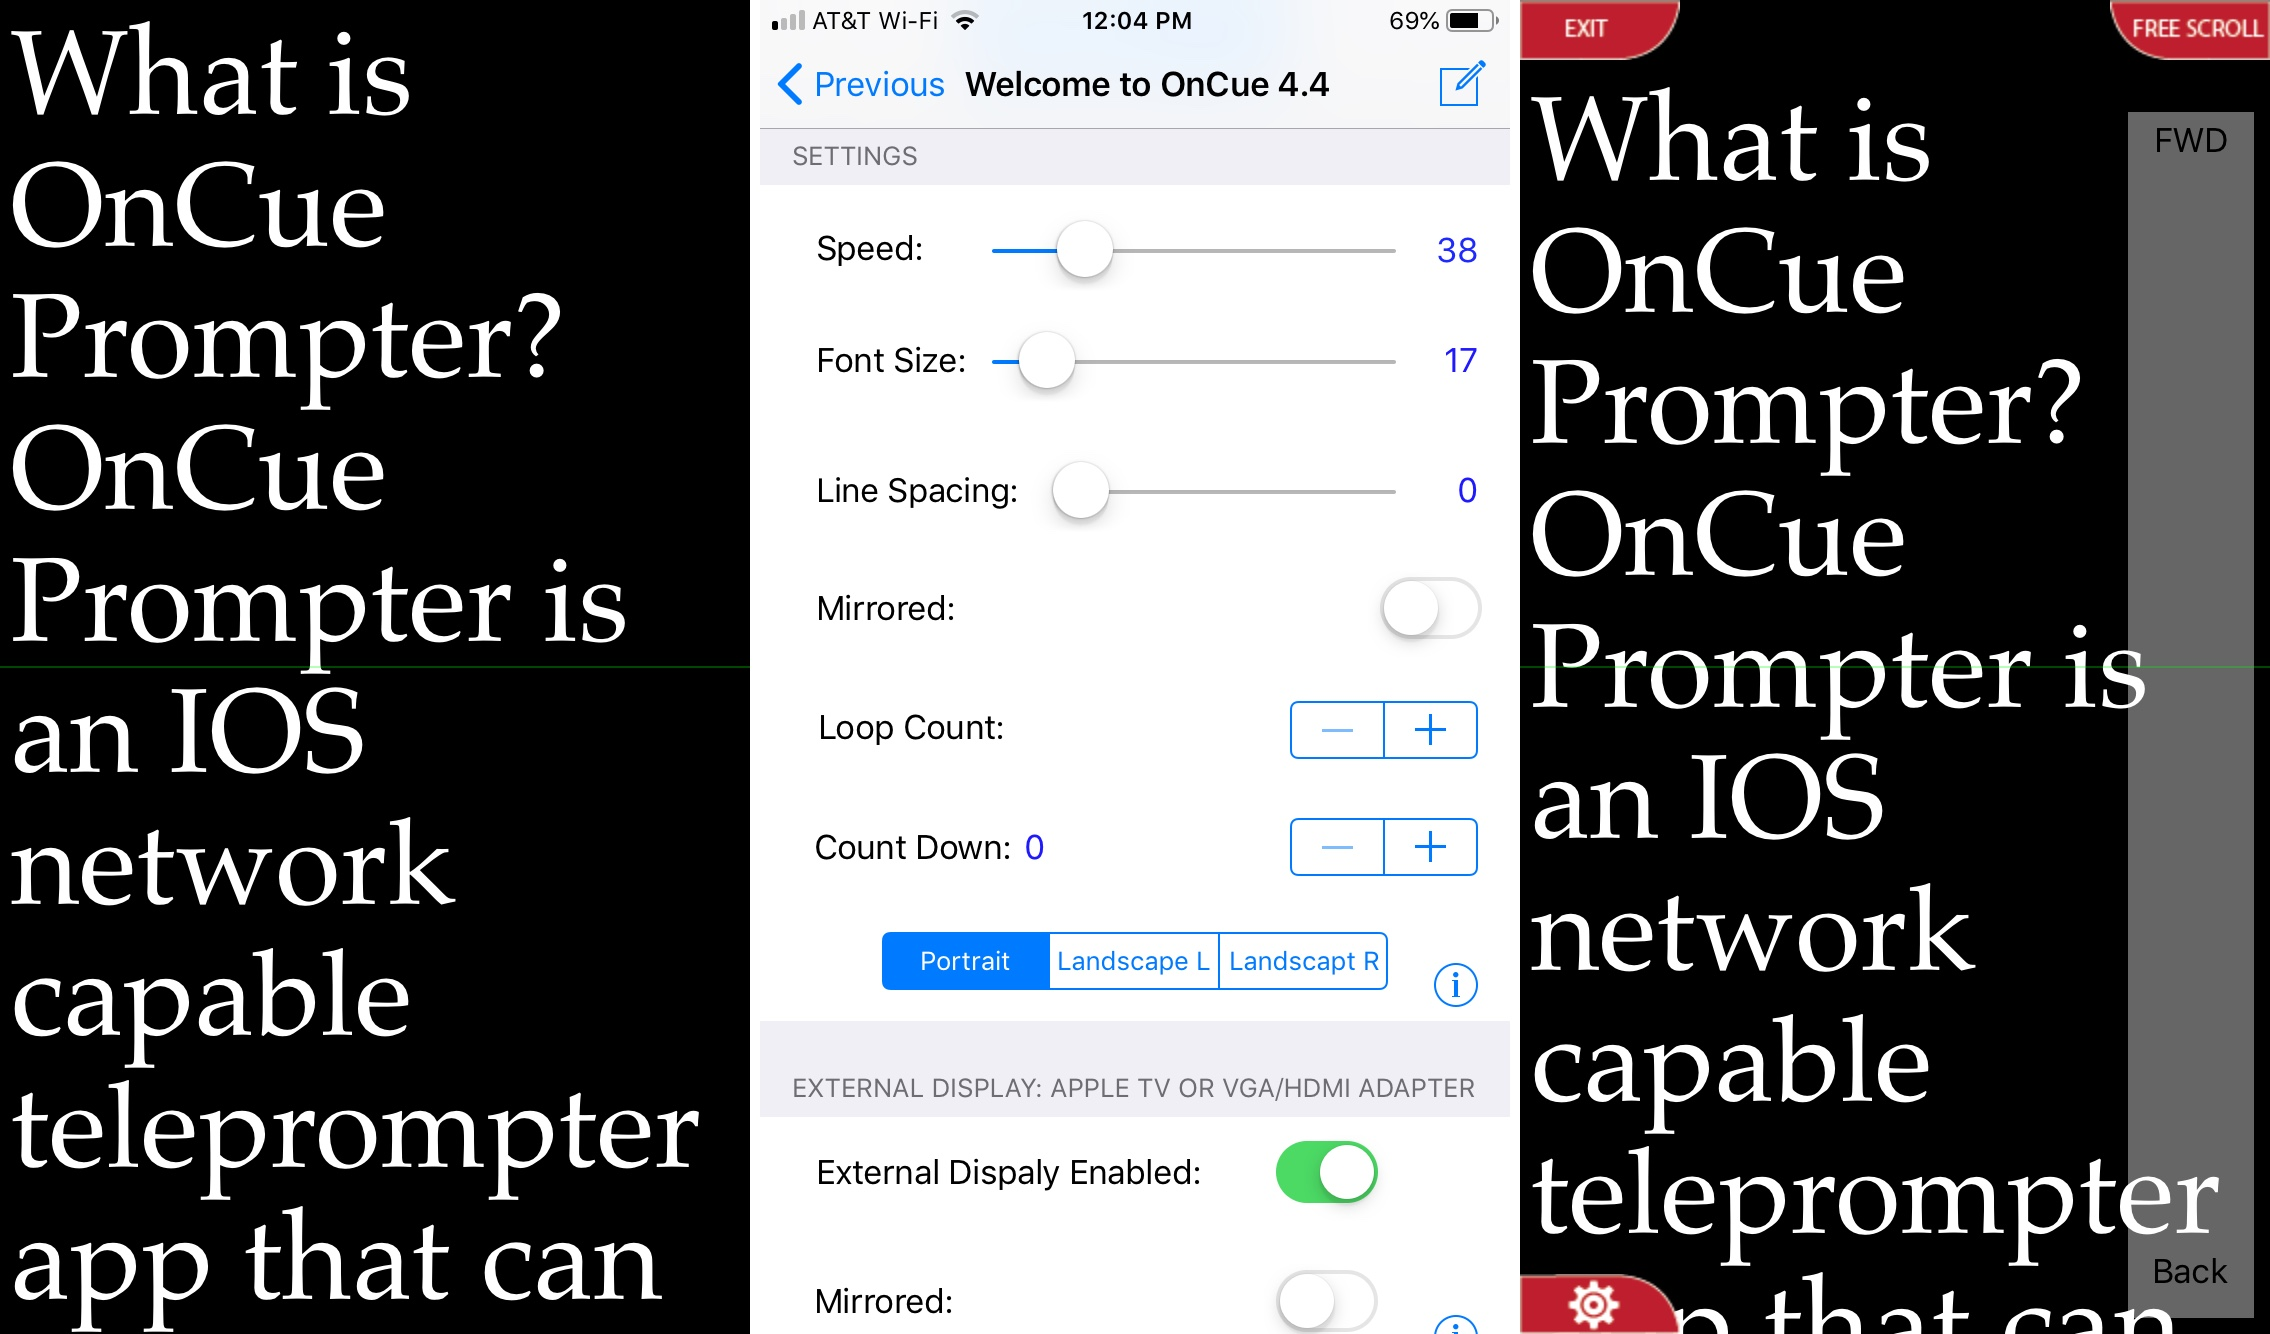 OnCue Prompter en iPhone